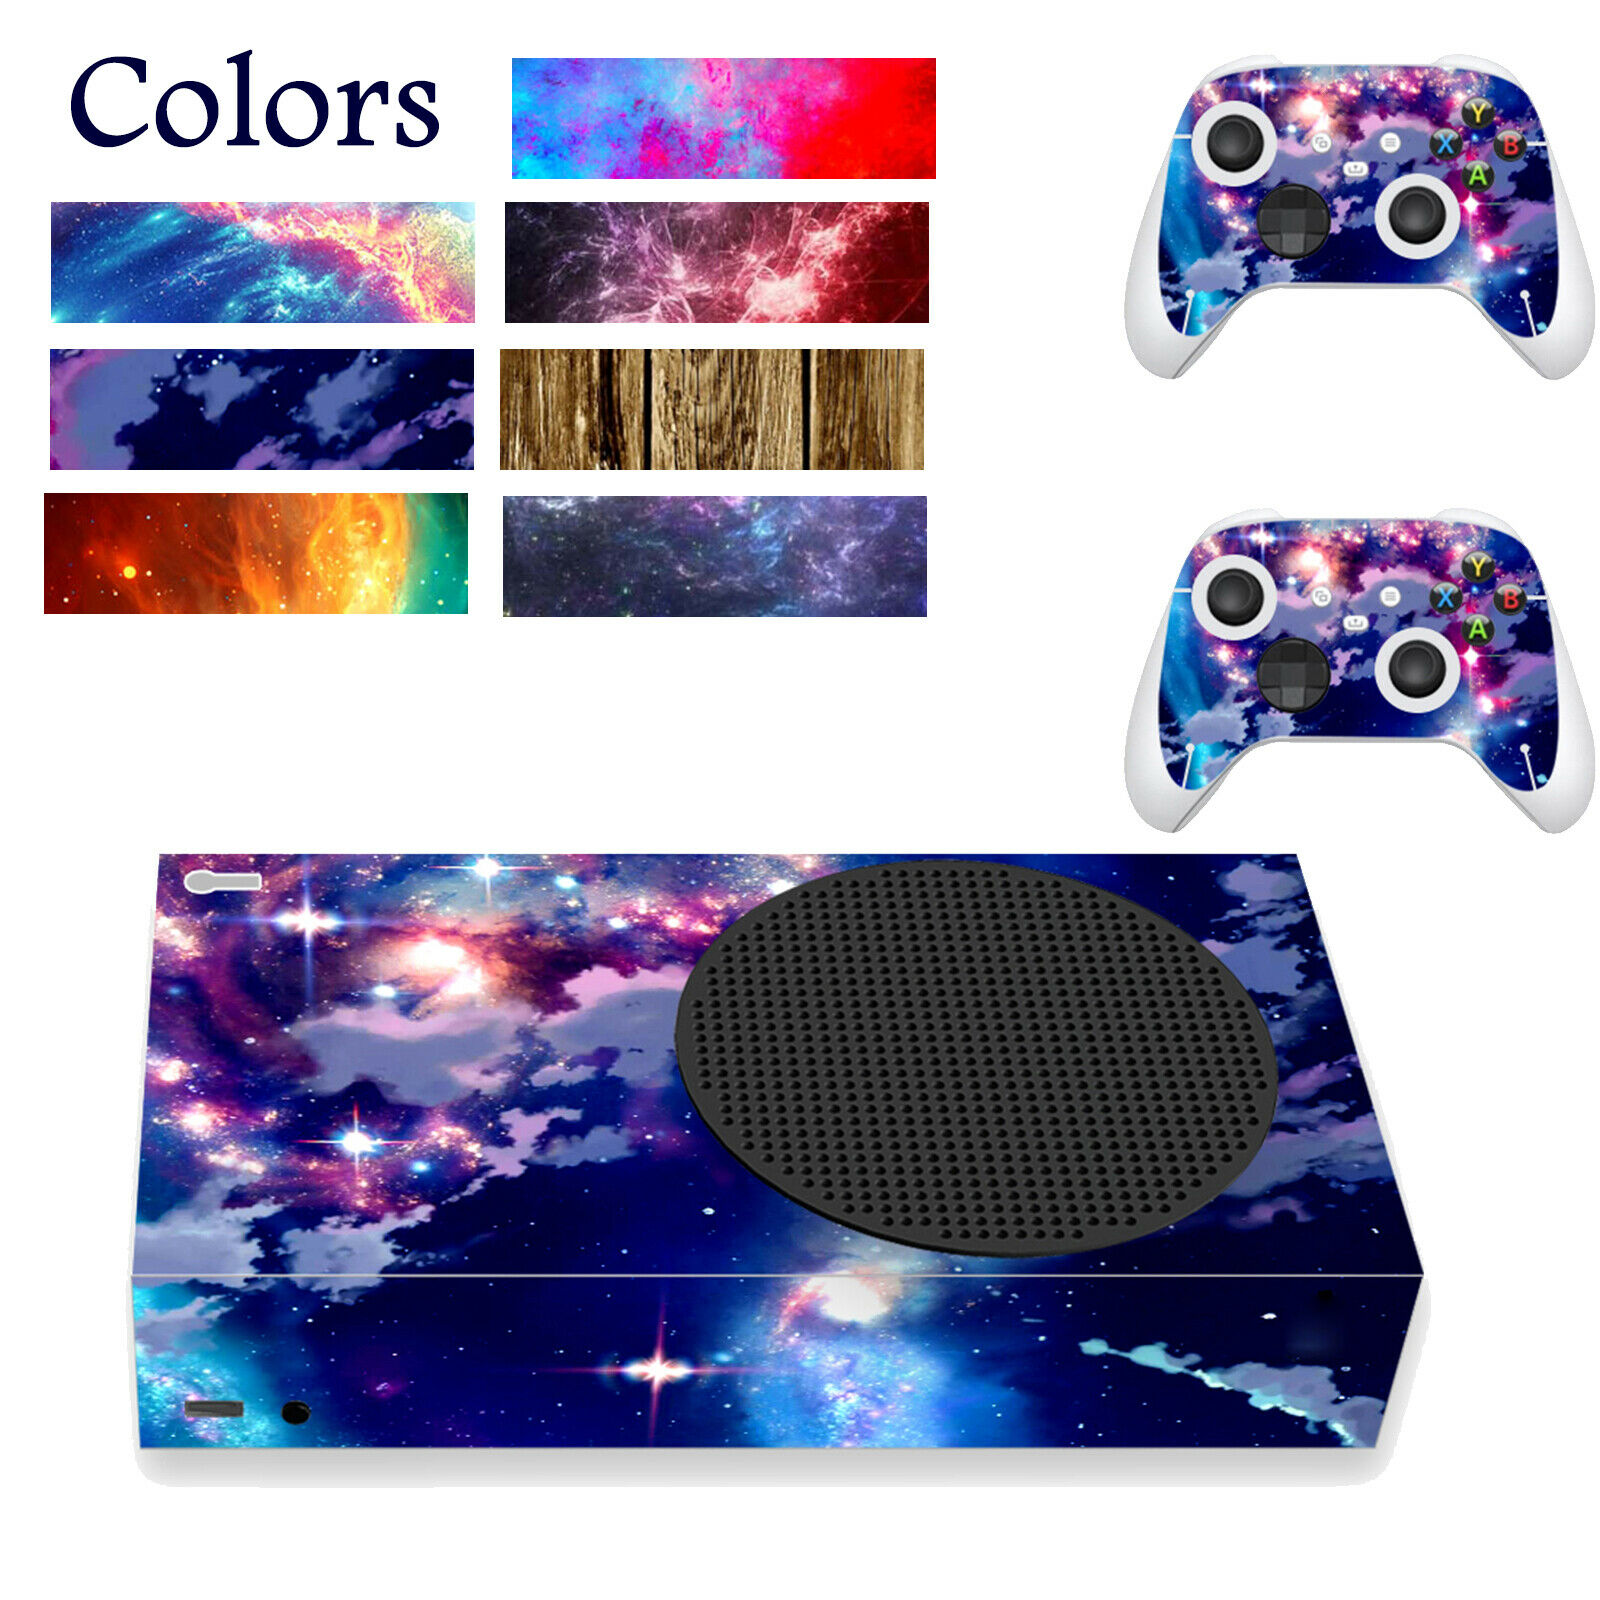 Skin Sticker Colorful Game Console Decorative for Xbox Series S Game Console BEU